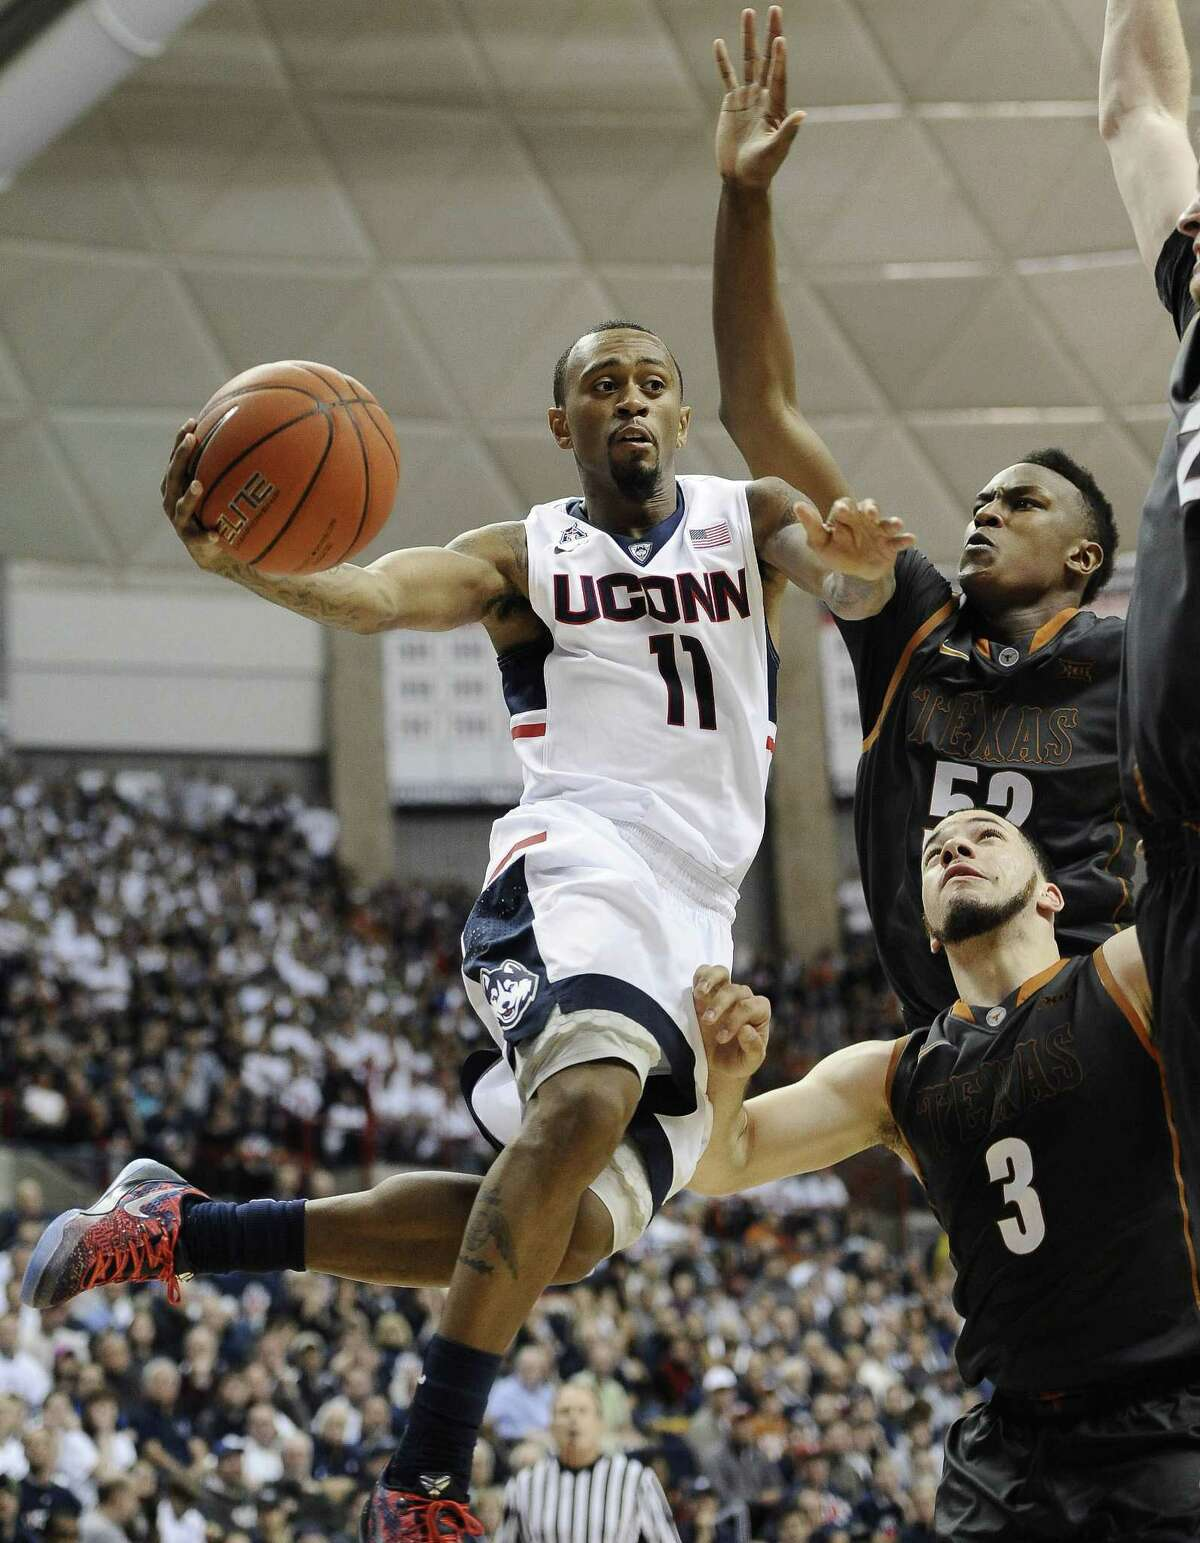 UConn's Ryan Boatright, left, passes around Texas' Myles Turner, top right, and Javan Felix during the second half of the Huskies' loss on Sunday in Storrs.